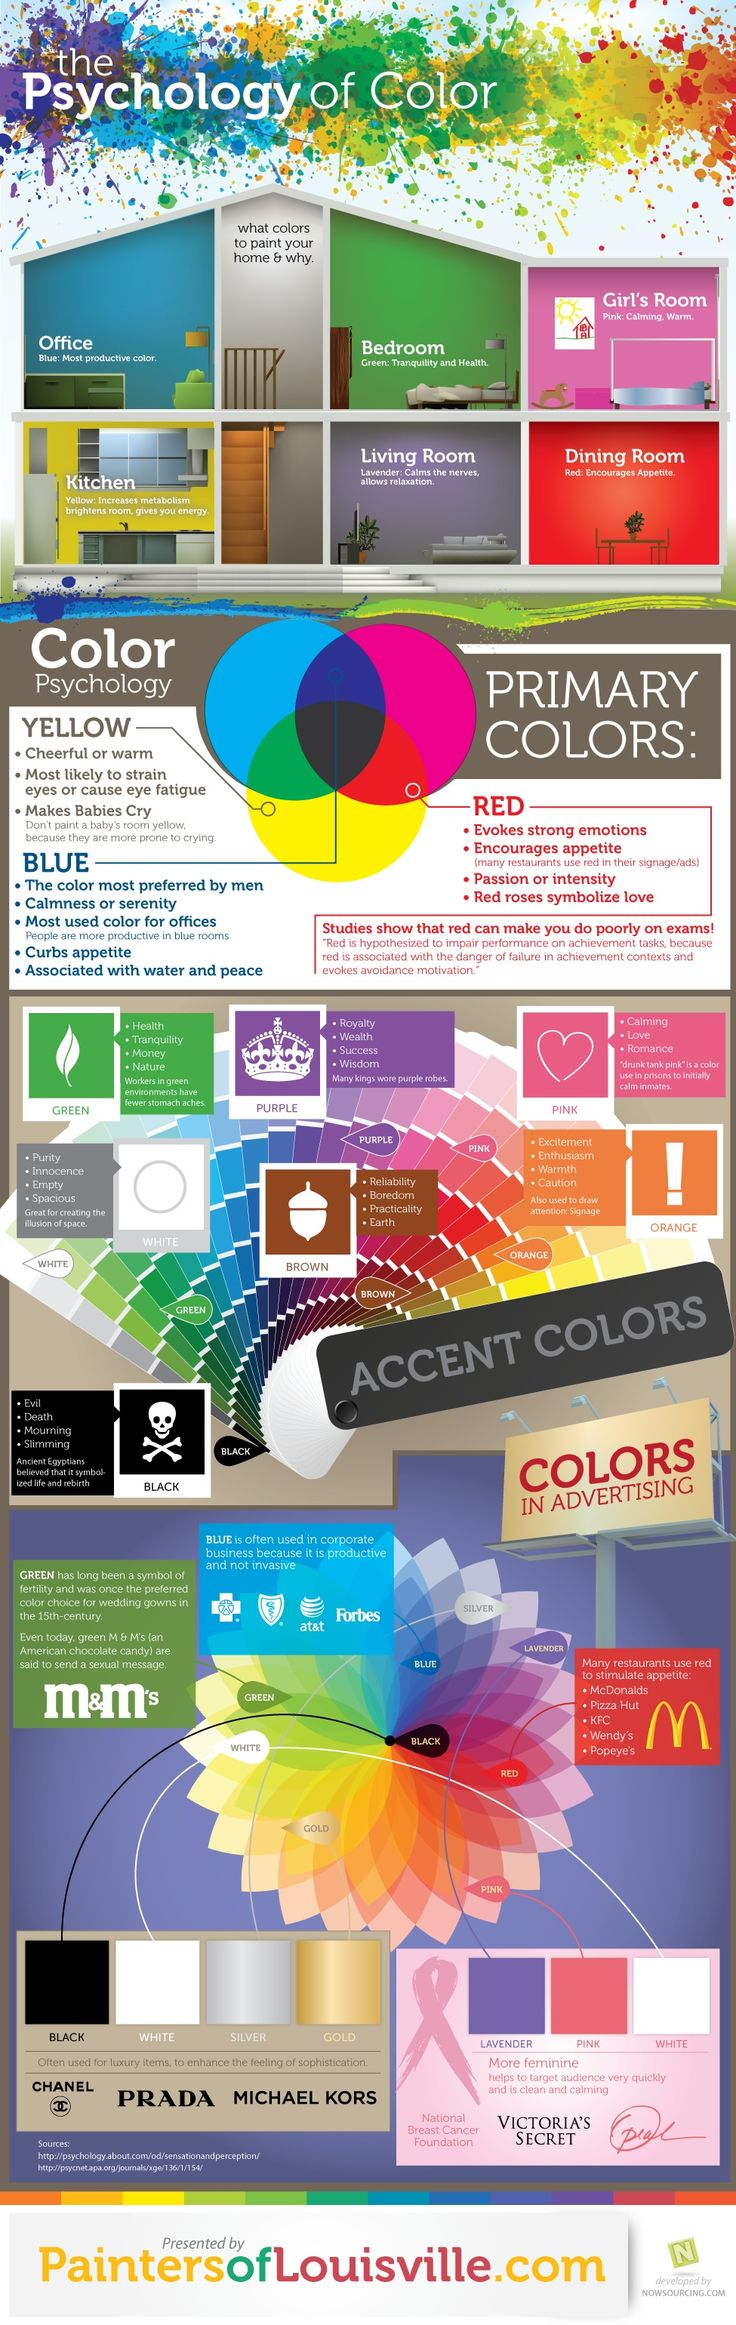 Psychology of colors for home decor and painting. Color meaning is so interesting and varied depending on where you are in the world. Since I love blue, it must mean I'm always productive... right?